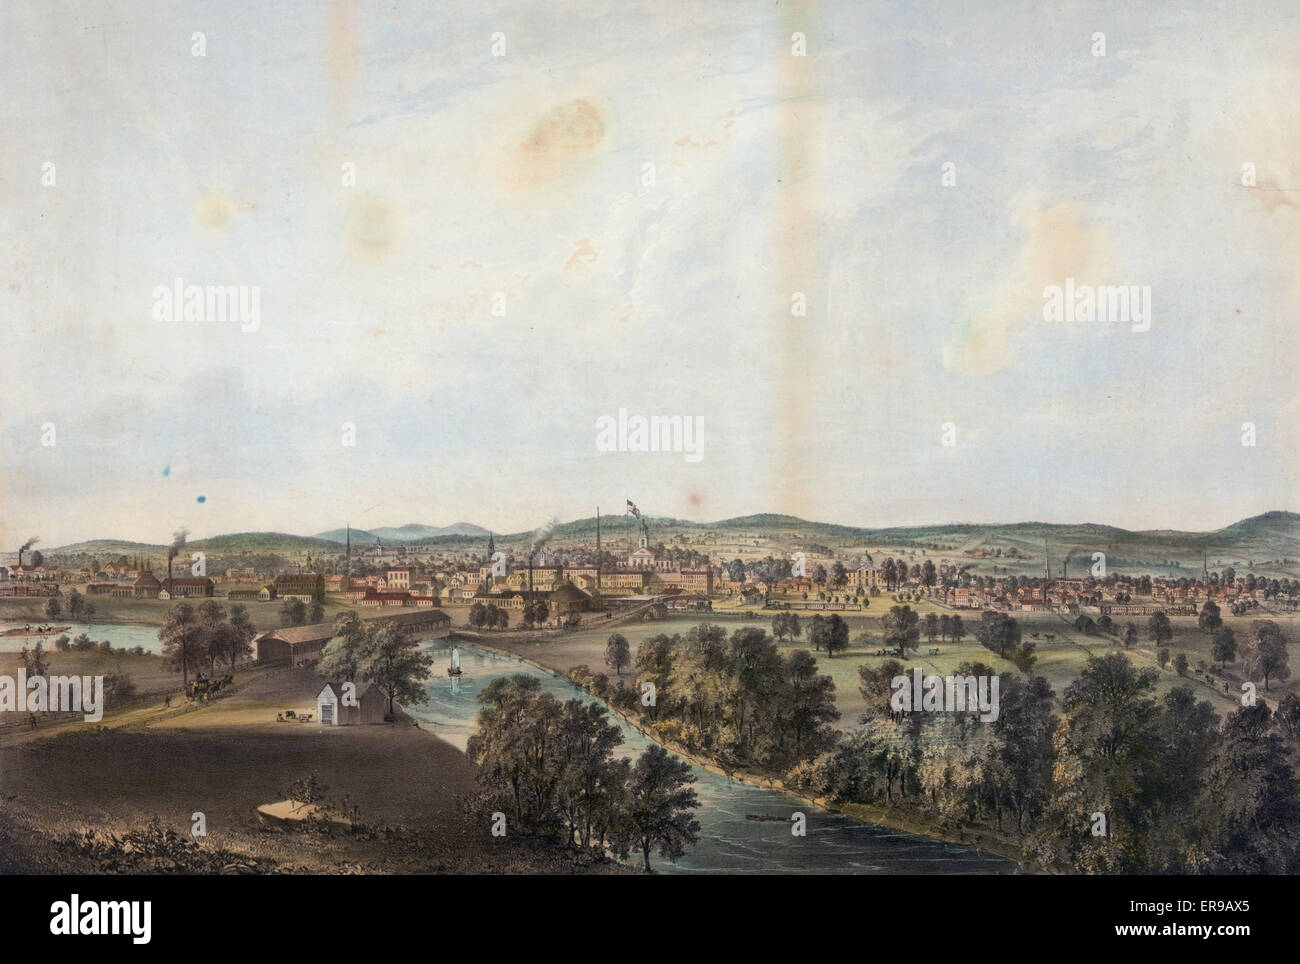 City of Concord, N.H. - From the high bluff about 80 rods north east of the Free Bridge. Date between 1851 and 1855. - Stock Image